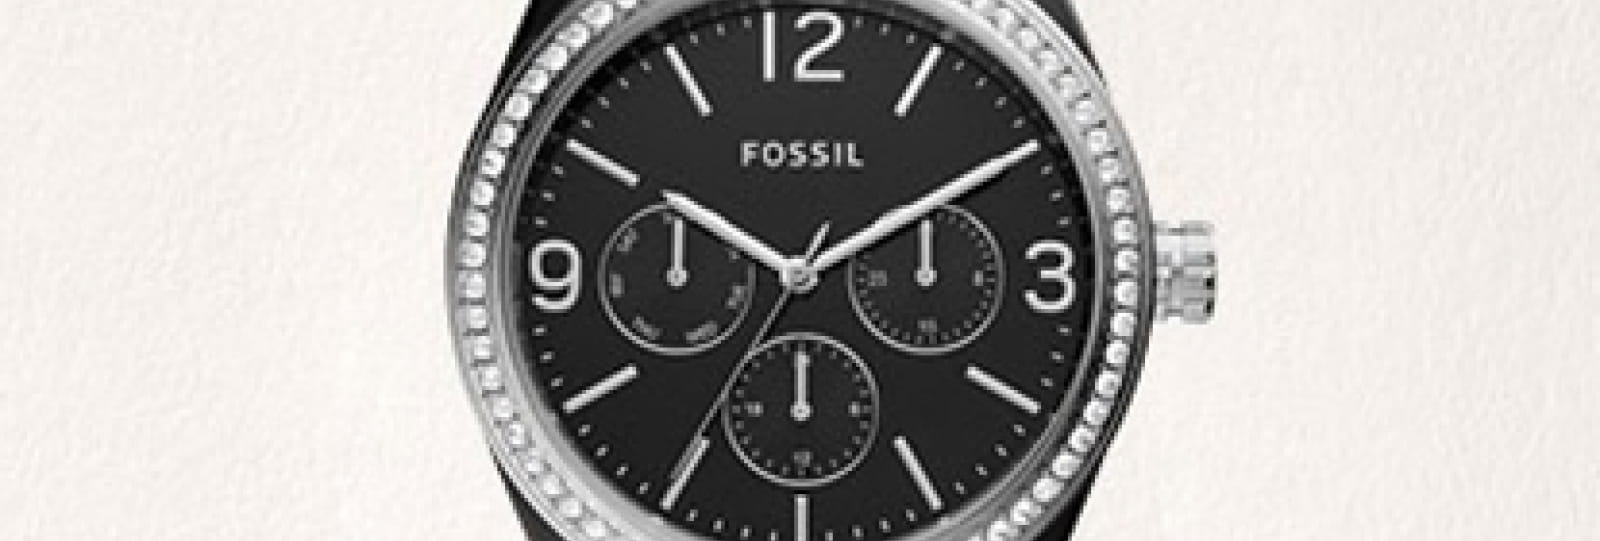 Marques Avenue - Fossil